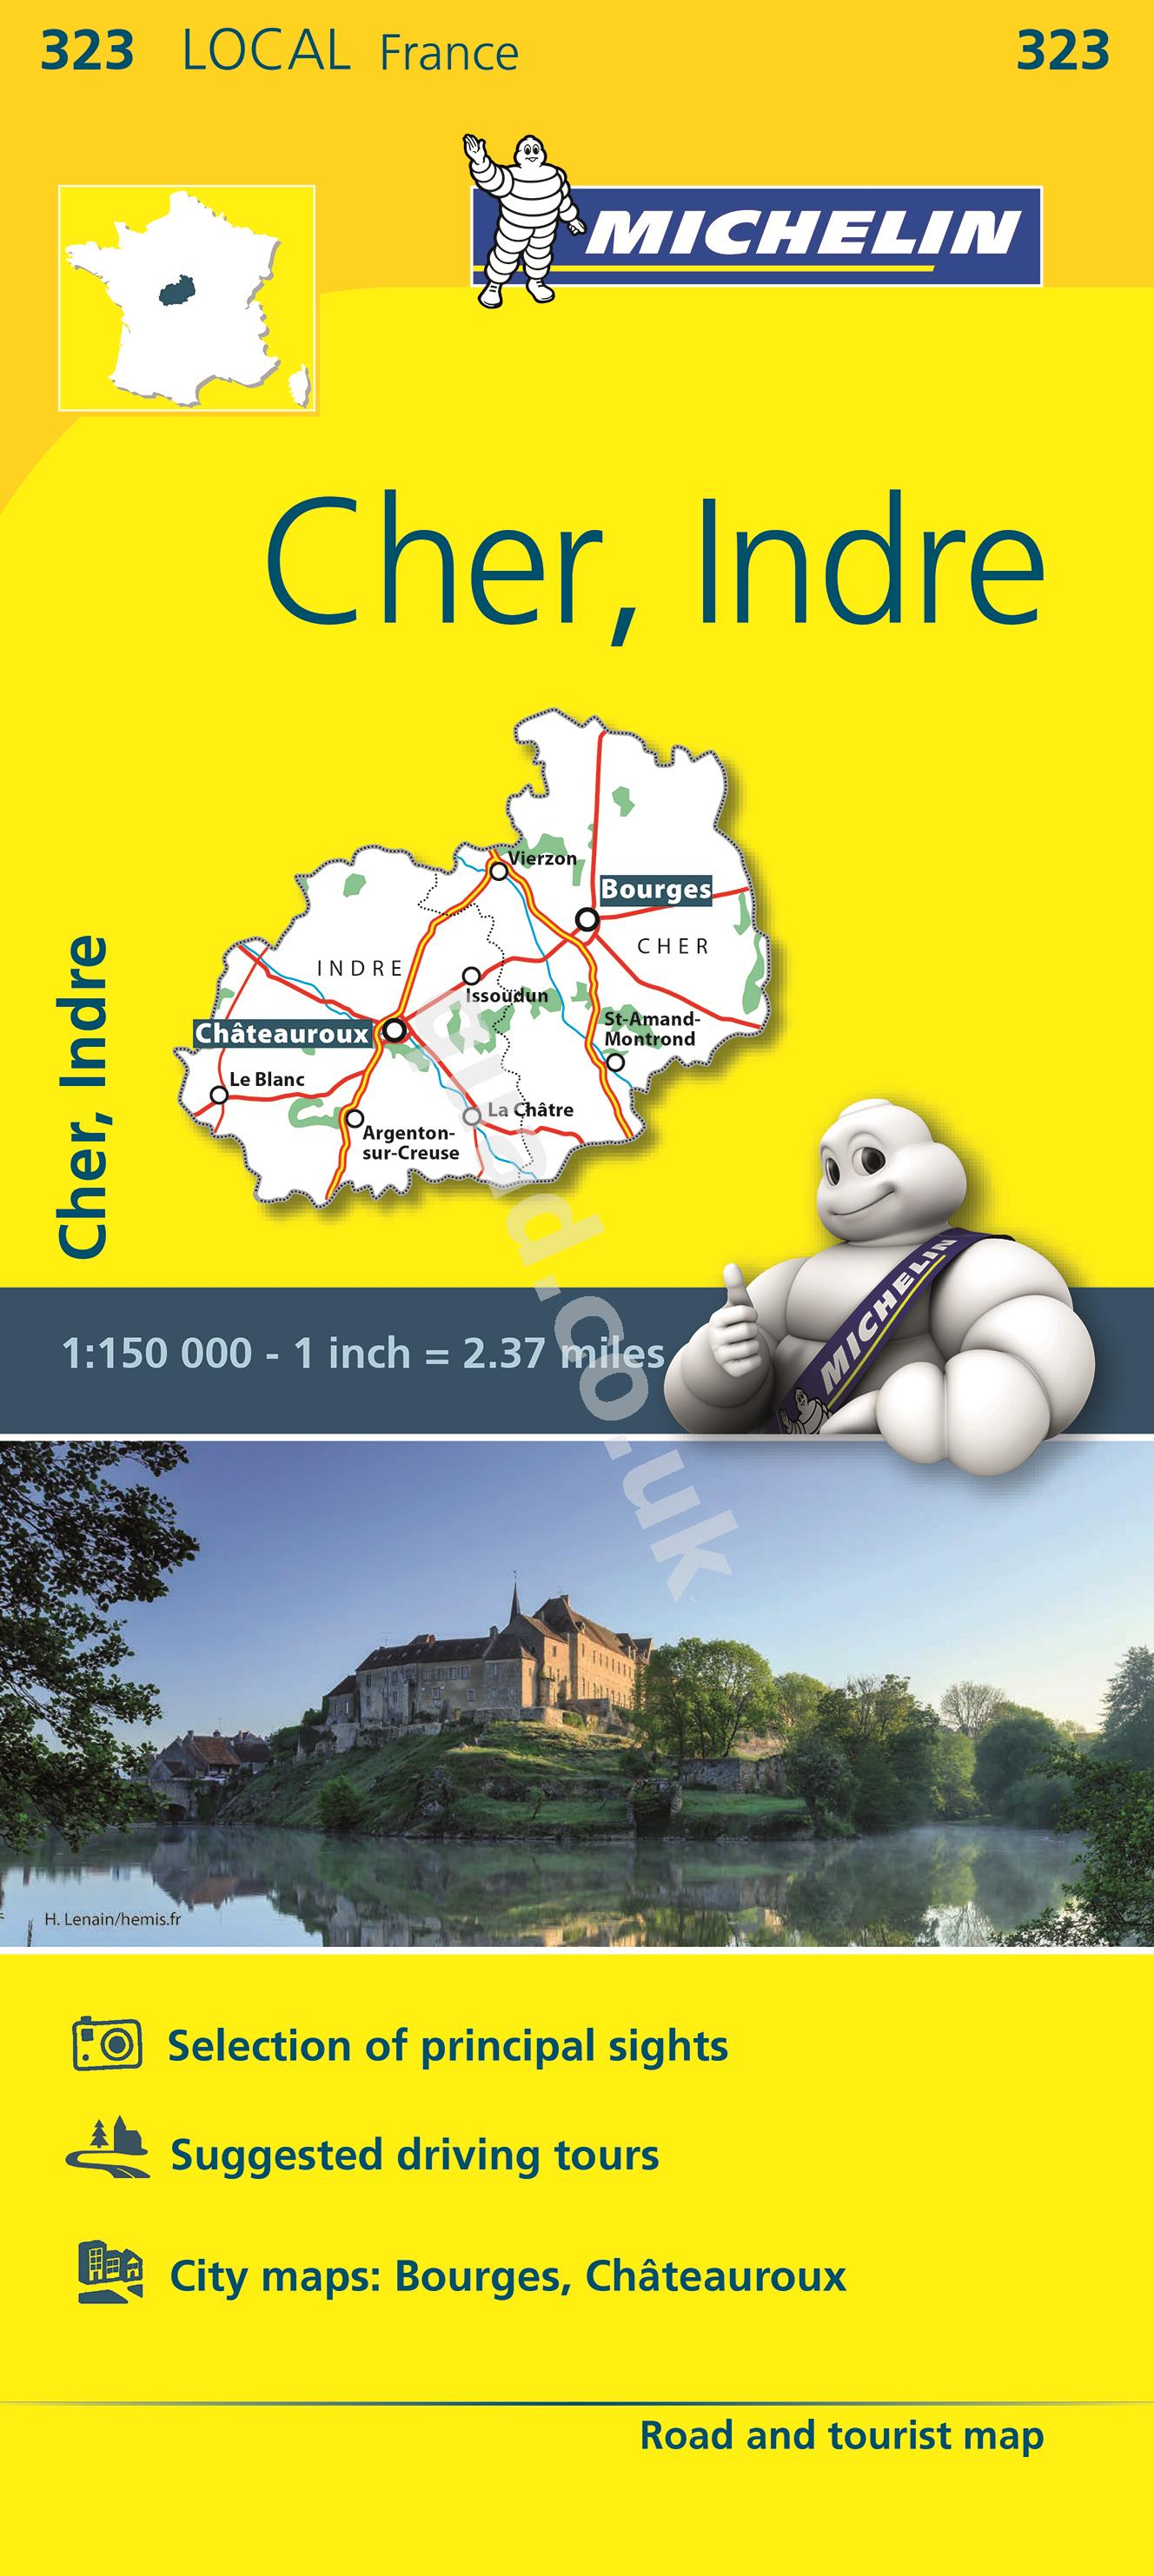 Michelin  Local Map - Cher, Indre (France)